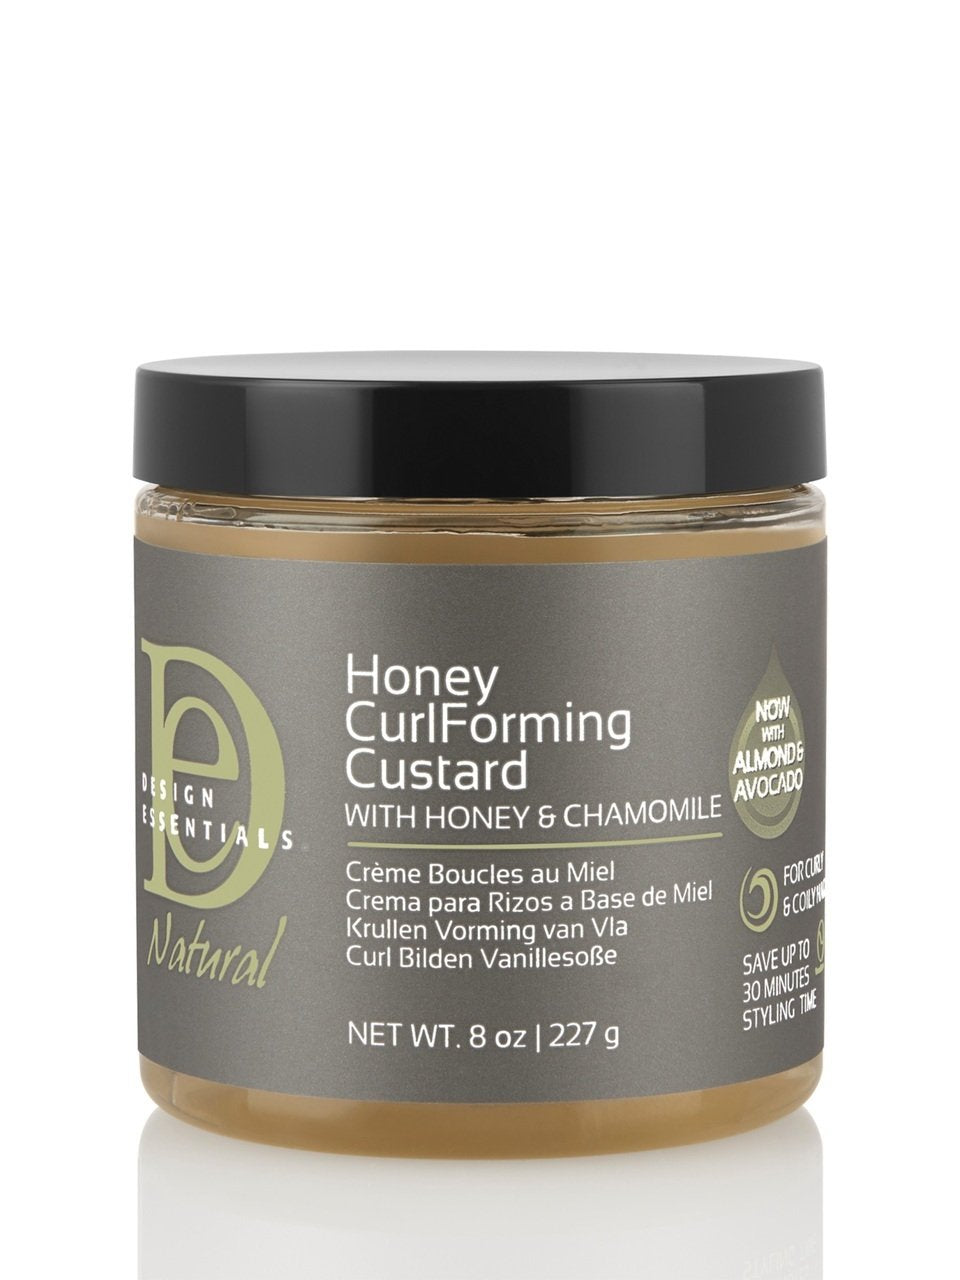 Design Essentials Natural- Honey Curl forming Custard with Honey & Chamomile 8 oz